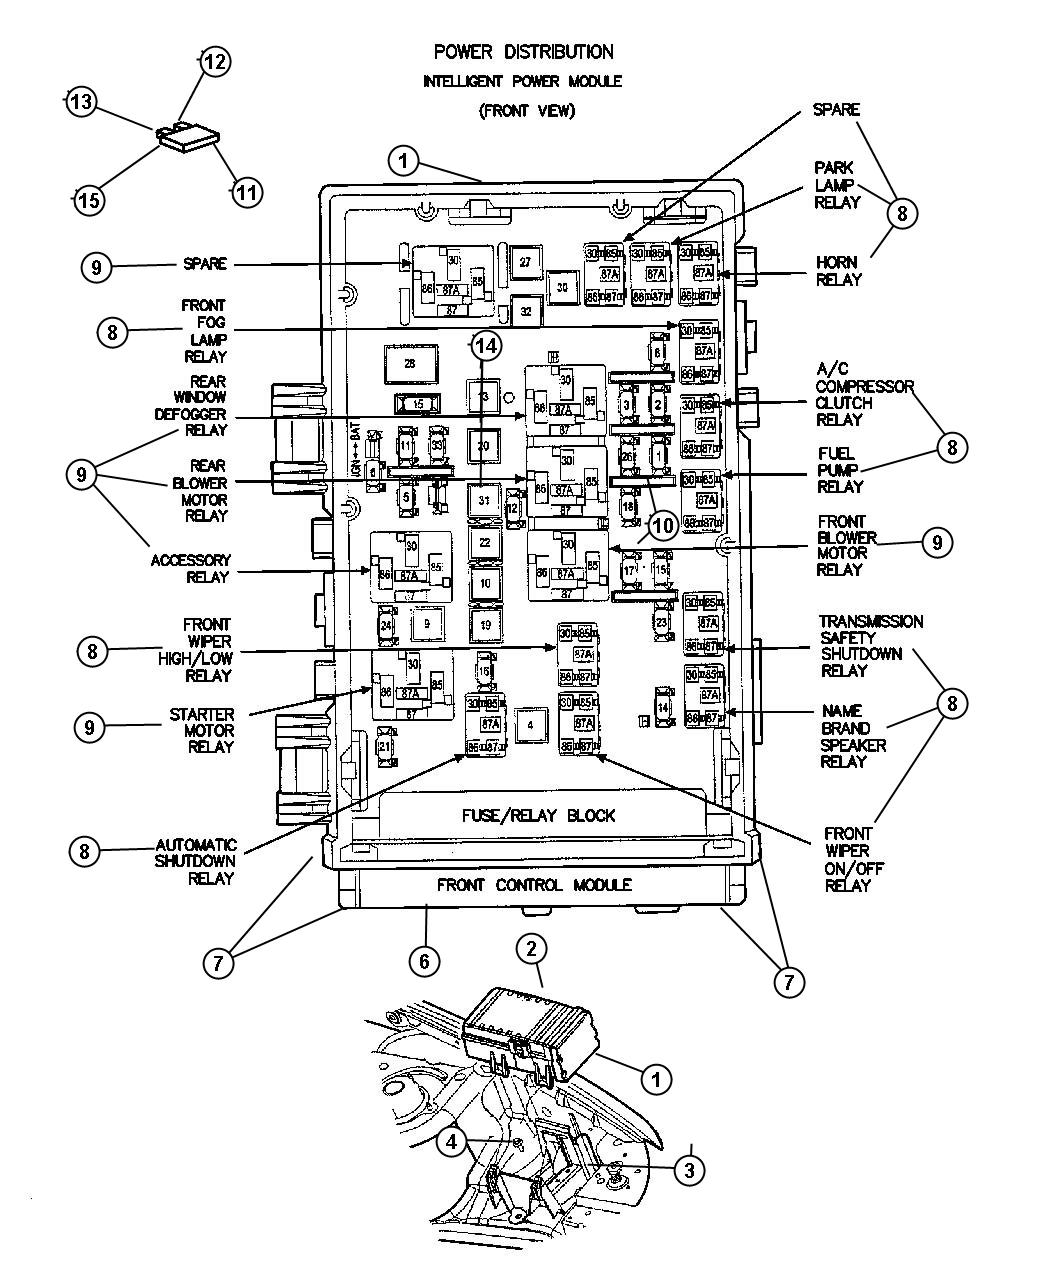 2001 chrysler voyager fuse box diagram 2001 get free 2003 chrysler town and country  fuse box location 2003 chrysler town and country fuse box diagram